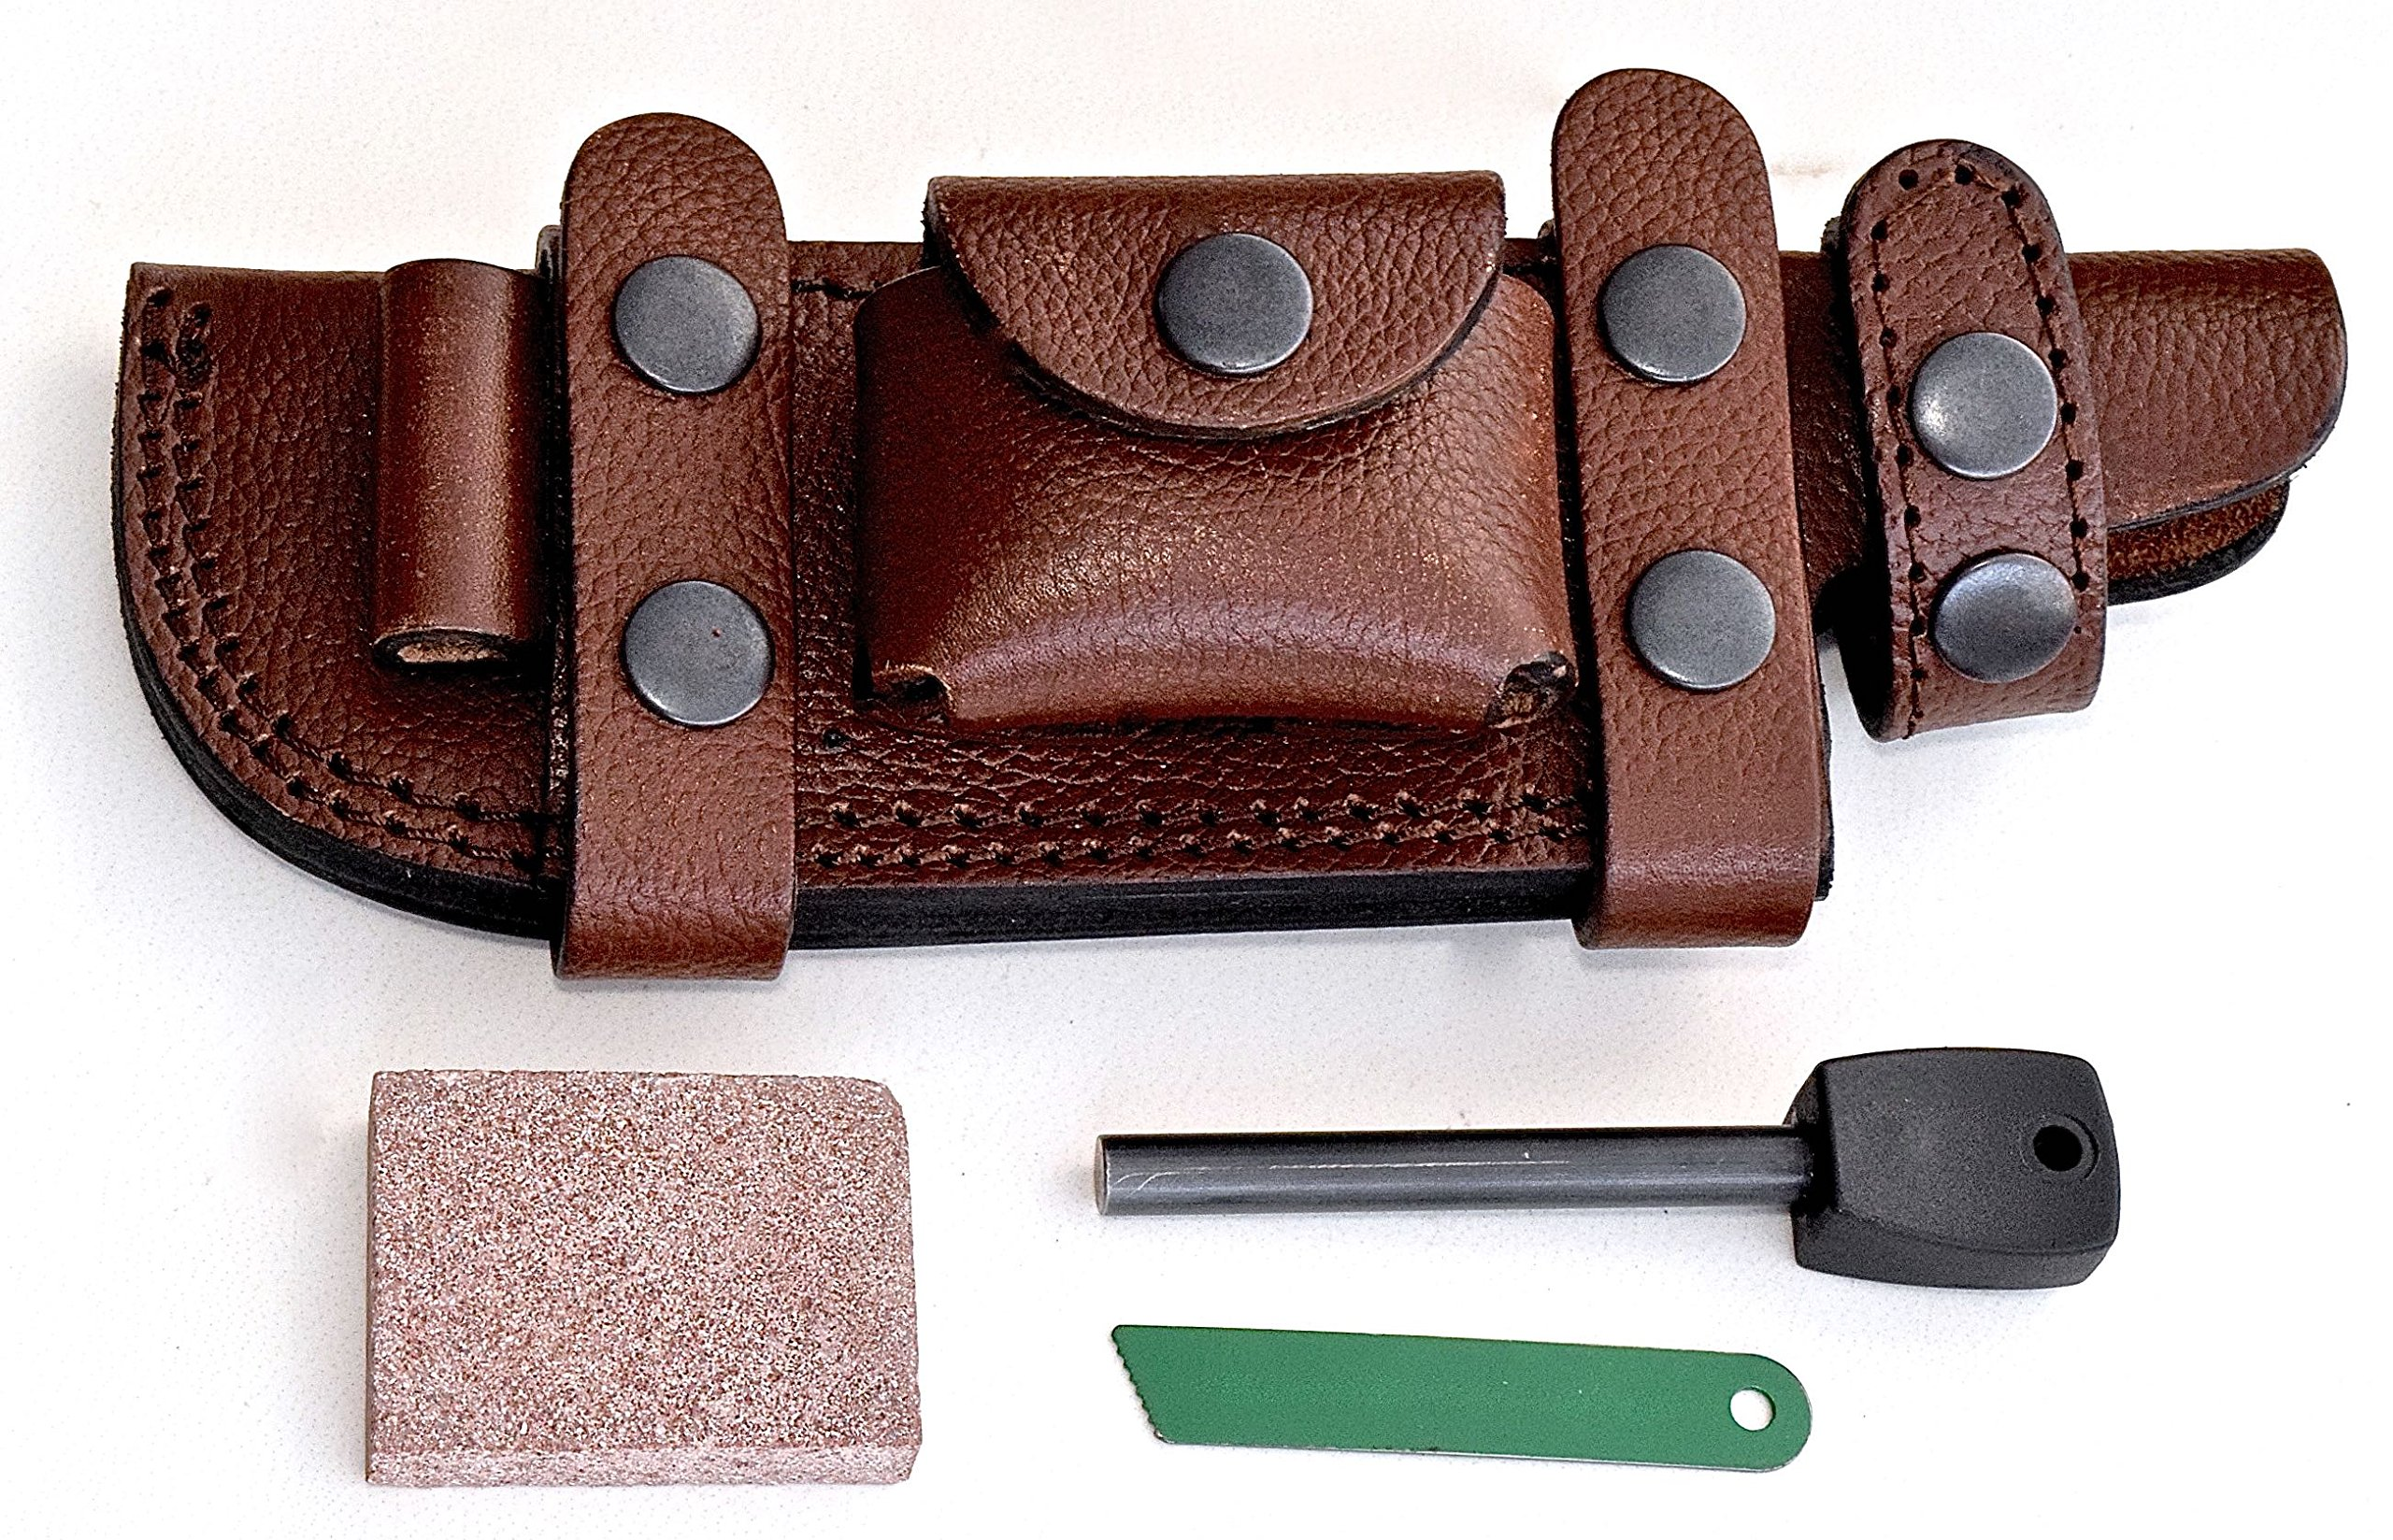 CFK Cutlery Company USA Handcrafted RIGHT HAND SCOUT/LEFT HAND CROSS DRAW Horizontal BROWN Leather Tactical Hunter Blade Knife Sheath & Wet Stone & Fire Starter Set CFK118